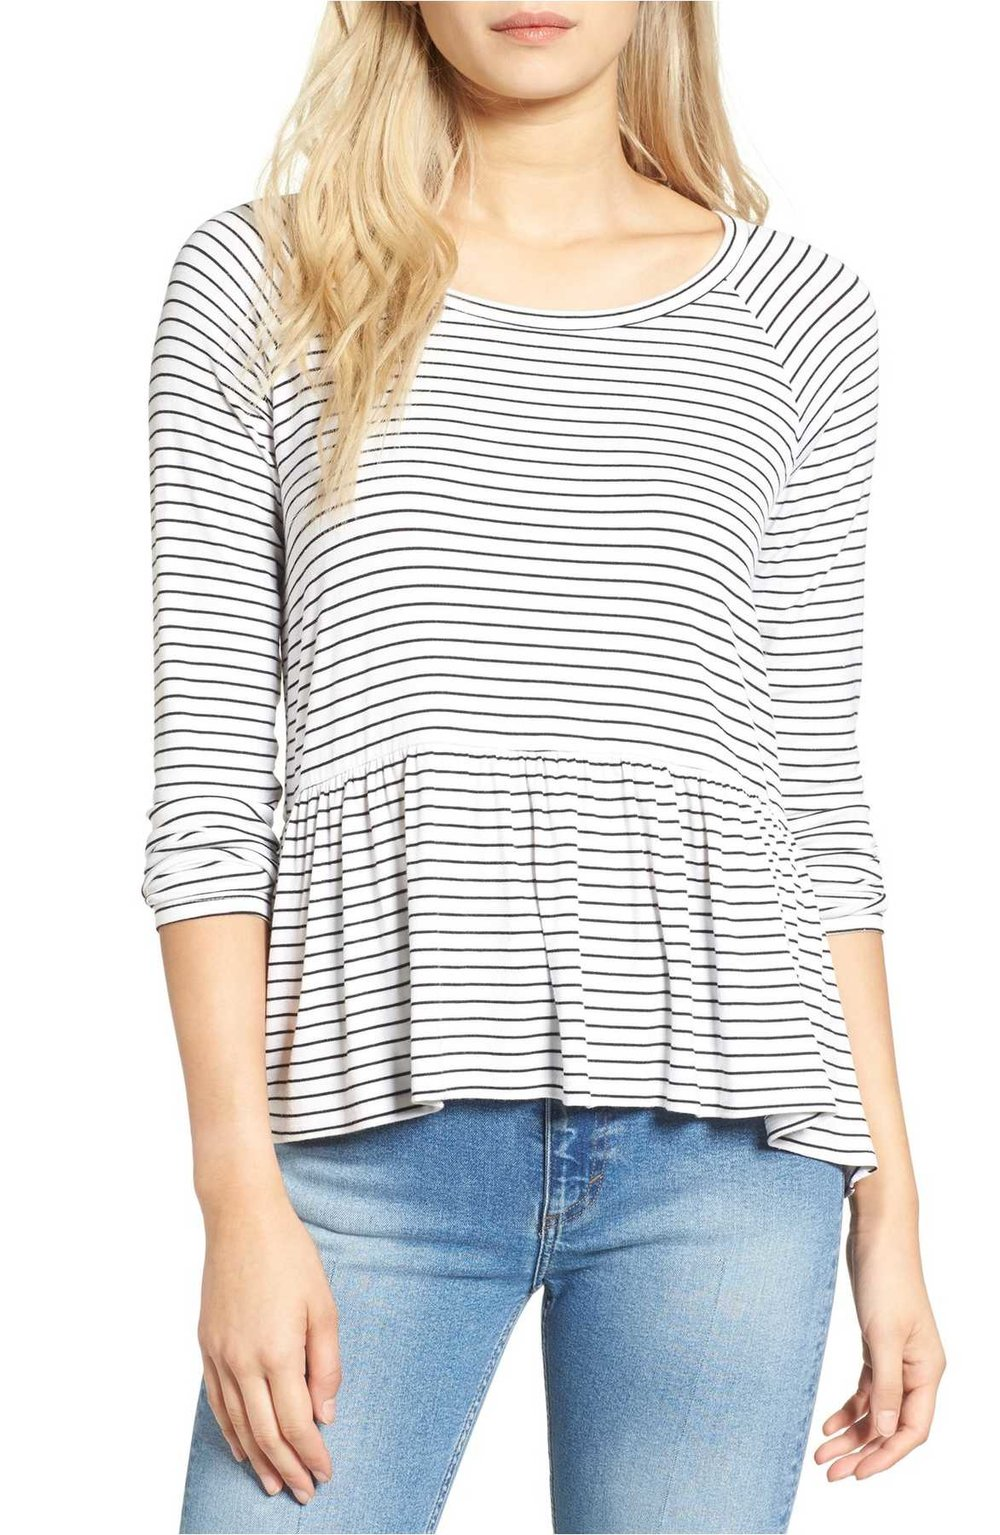 Nordstrom BP striped peplum tee